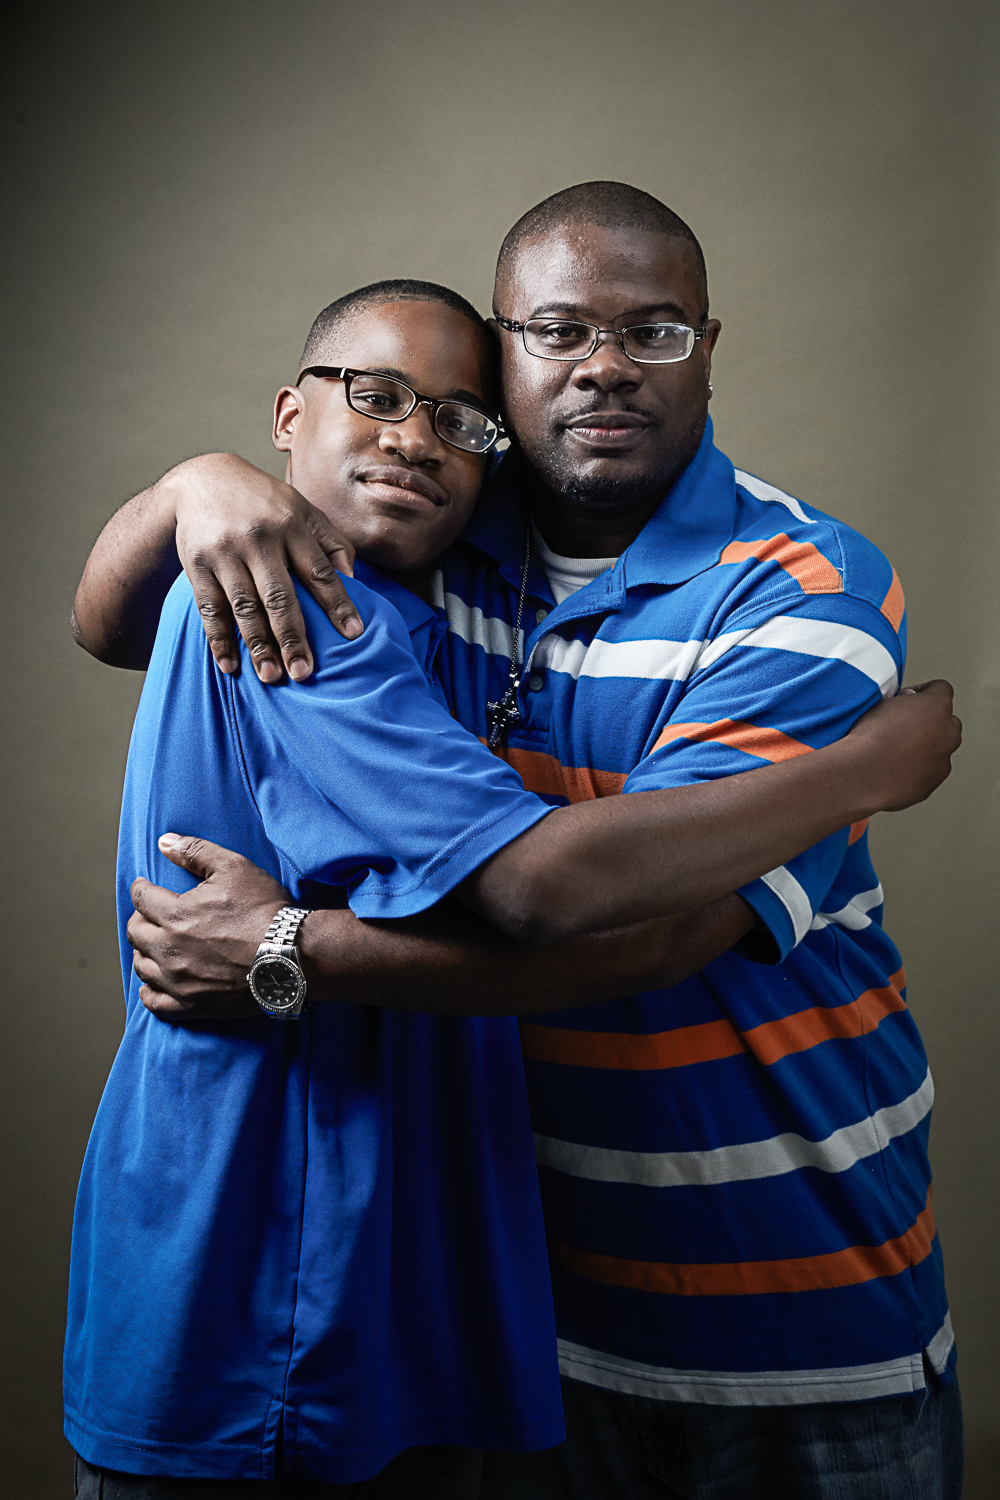 africian american father and son